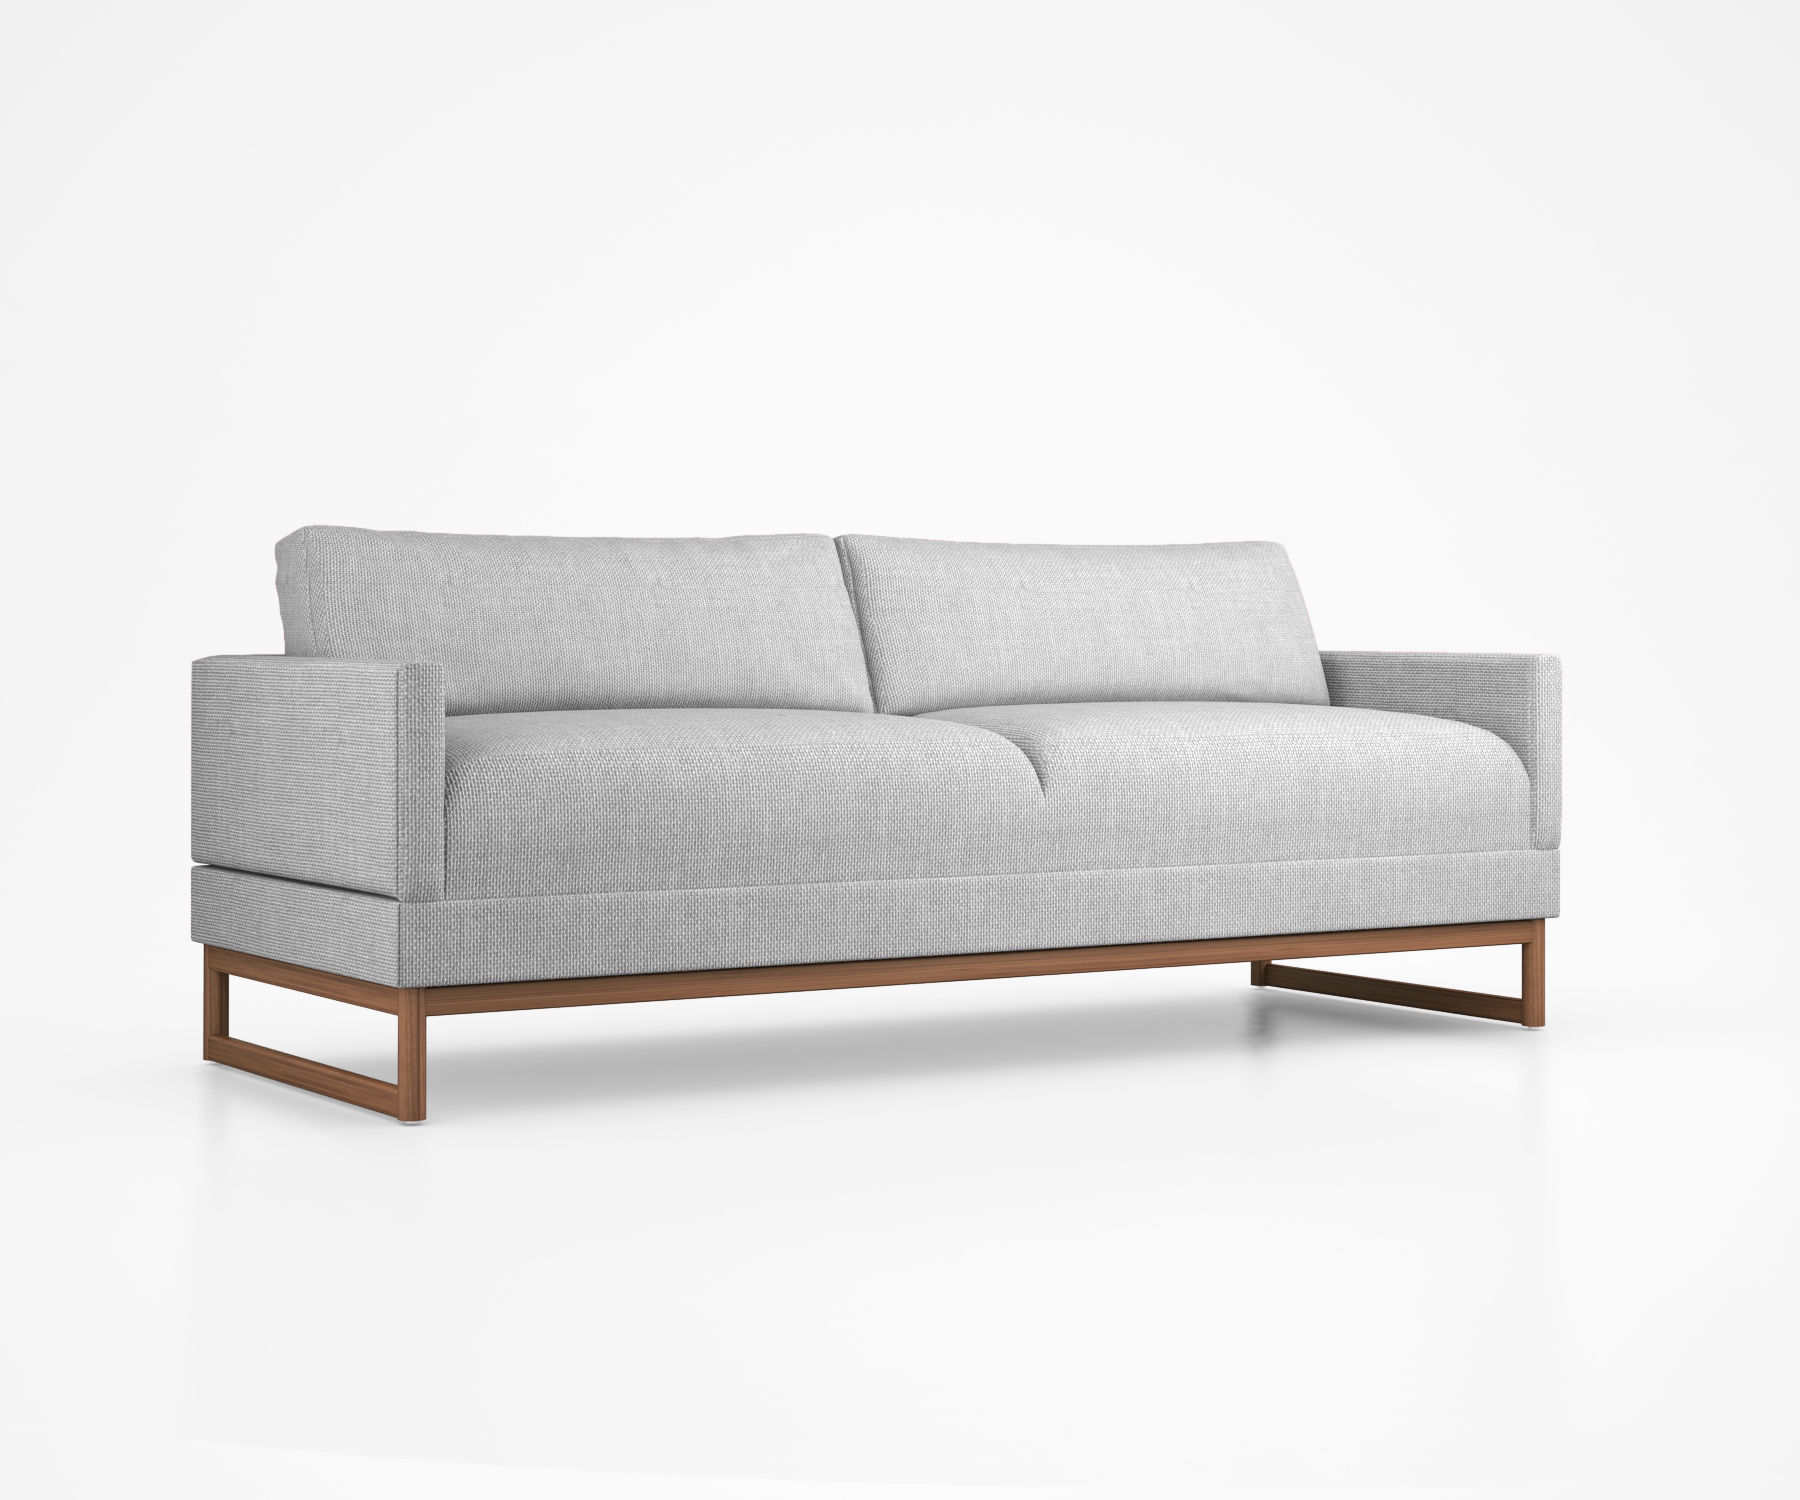 Diplomat Sleeper Sofa by Blu Dot | 3D model